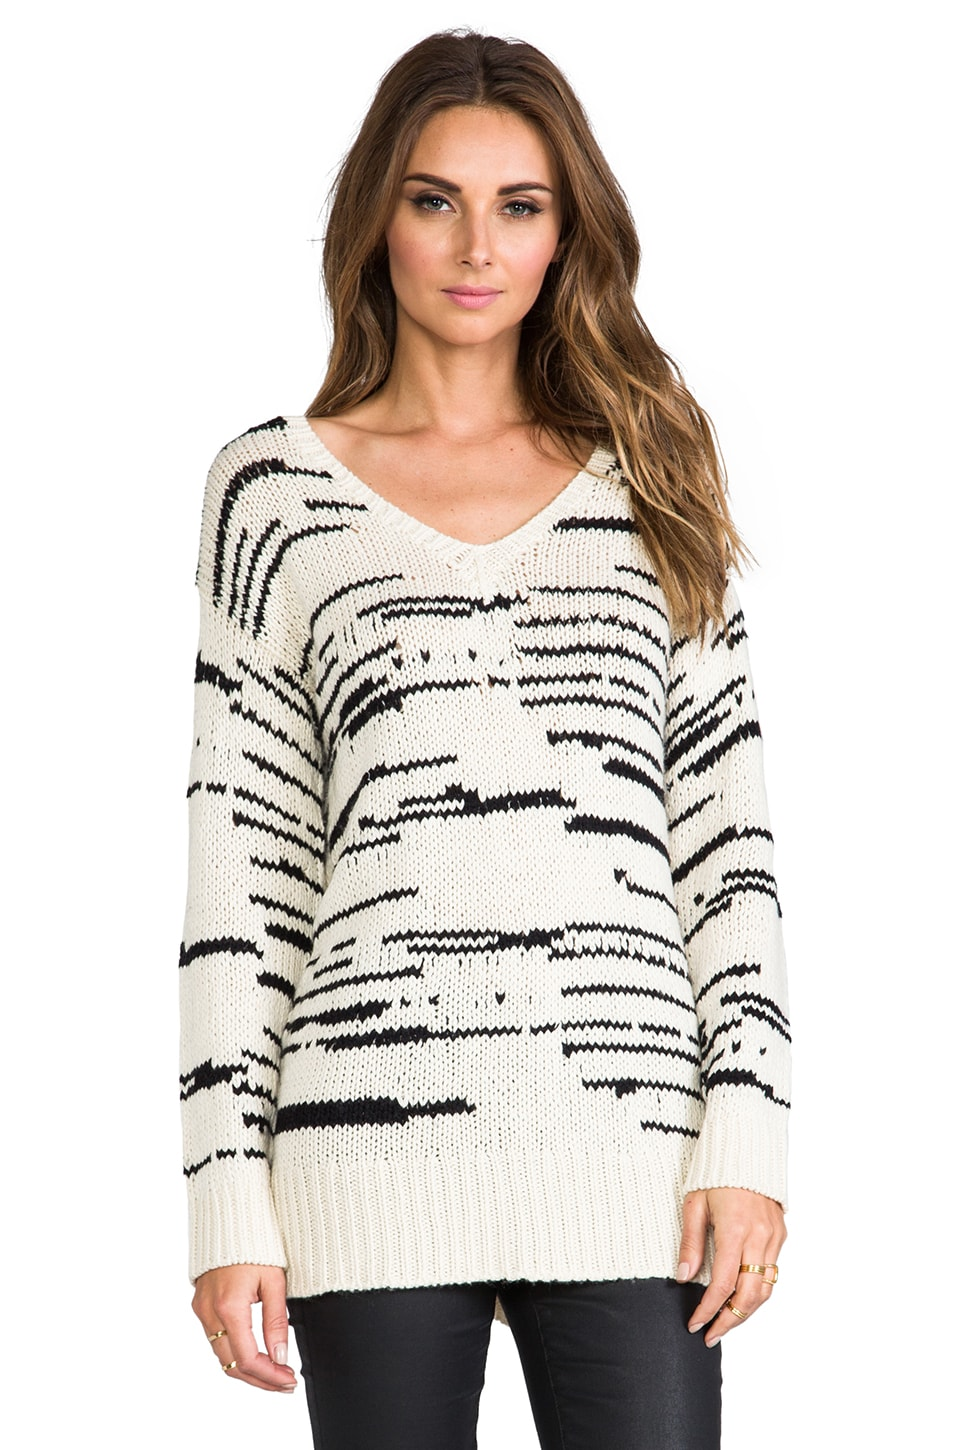 TOWNSEN Misty Sweater in Cream/Black